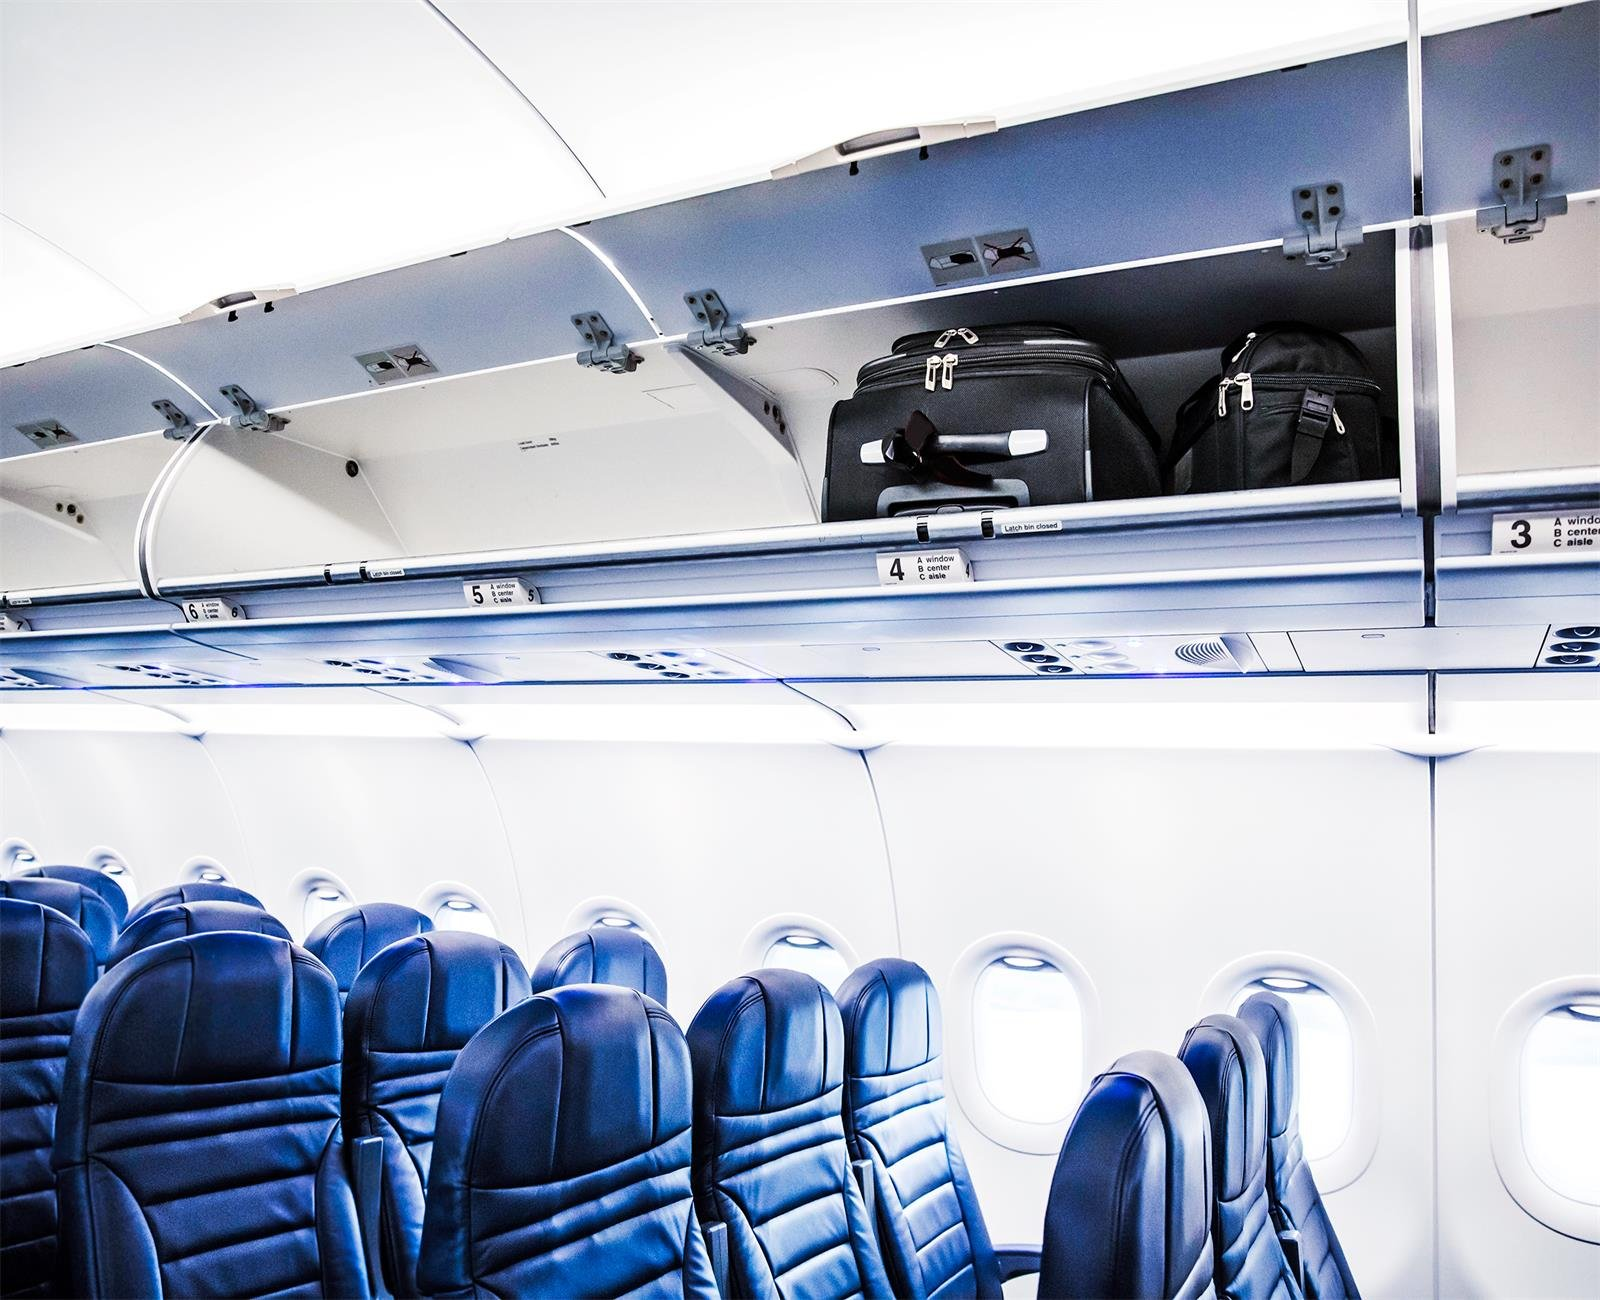 AOFOTO 8x6.5ft Airplane Interior Background Aircraft Inside Cabin Seat And Overhead Bins Photography Backdrop Business Vacation Trip Photo Shoot Studio Props Adult Artistic Portrait Vinyl Wallpaper